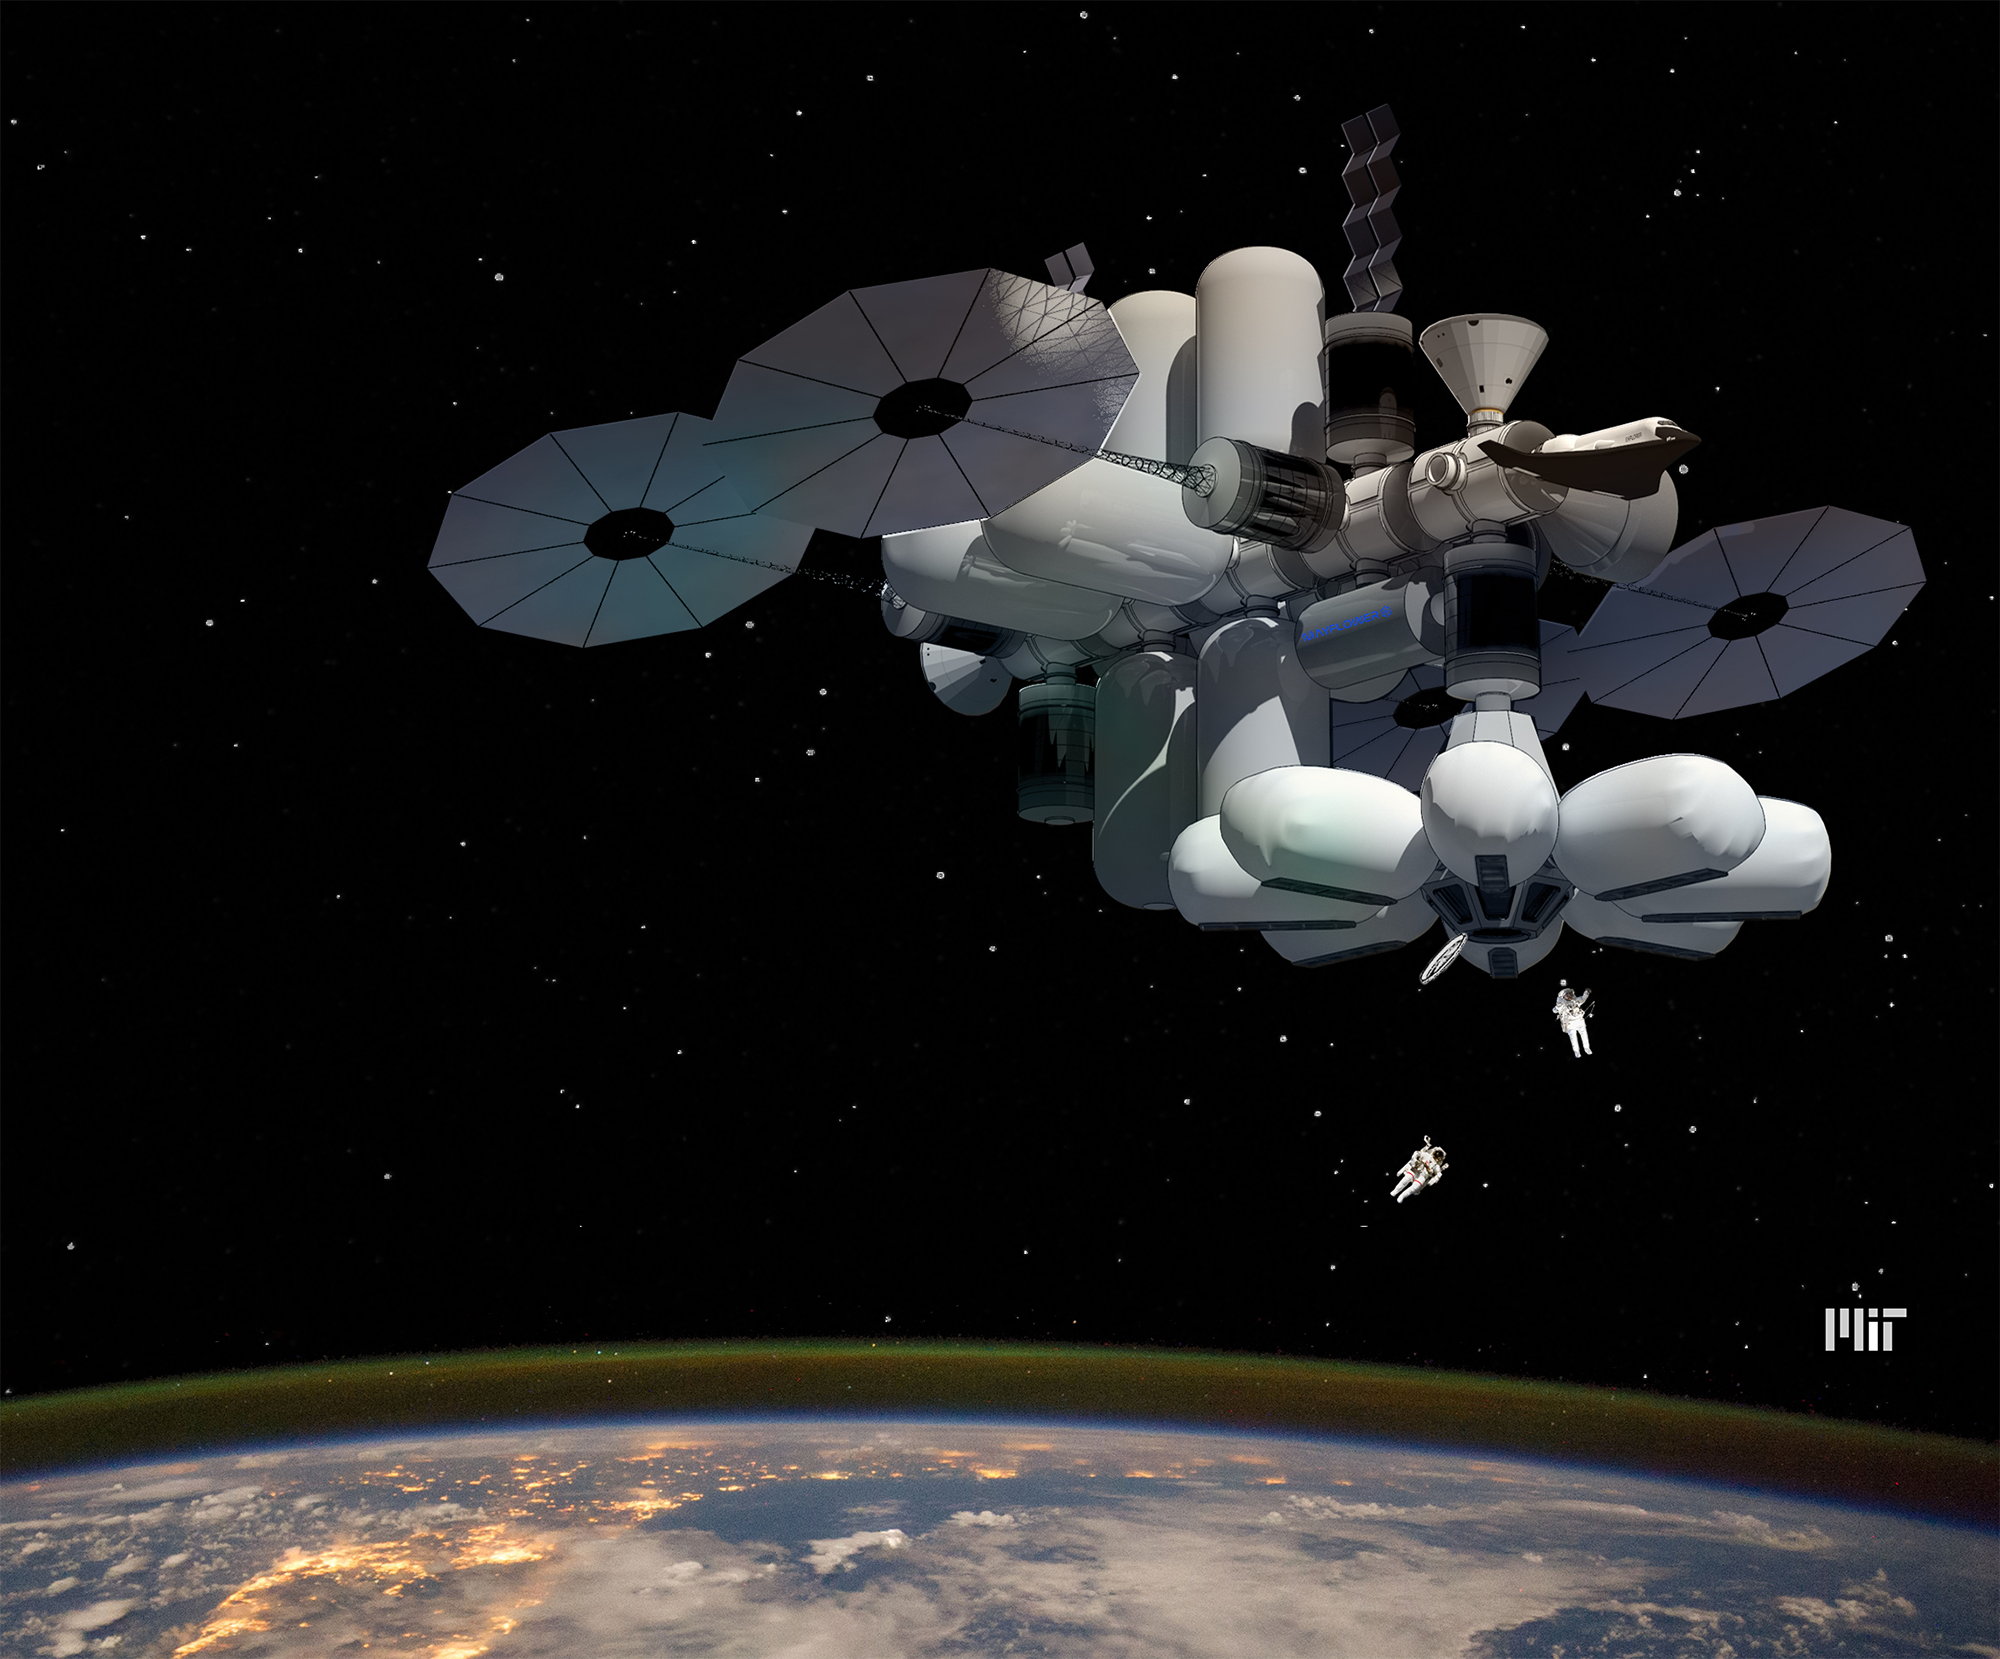 MIT space hotel wins NASA graduate design competition | MIT News